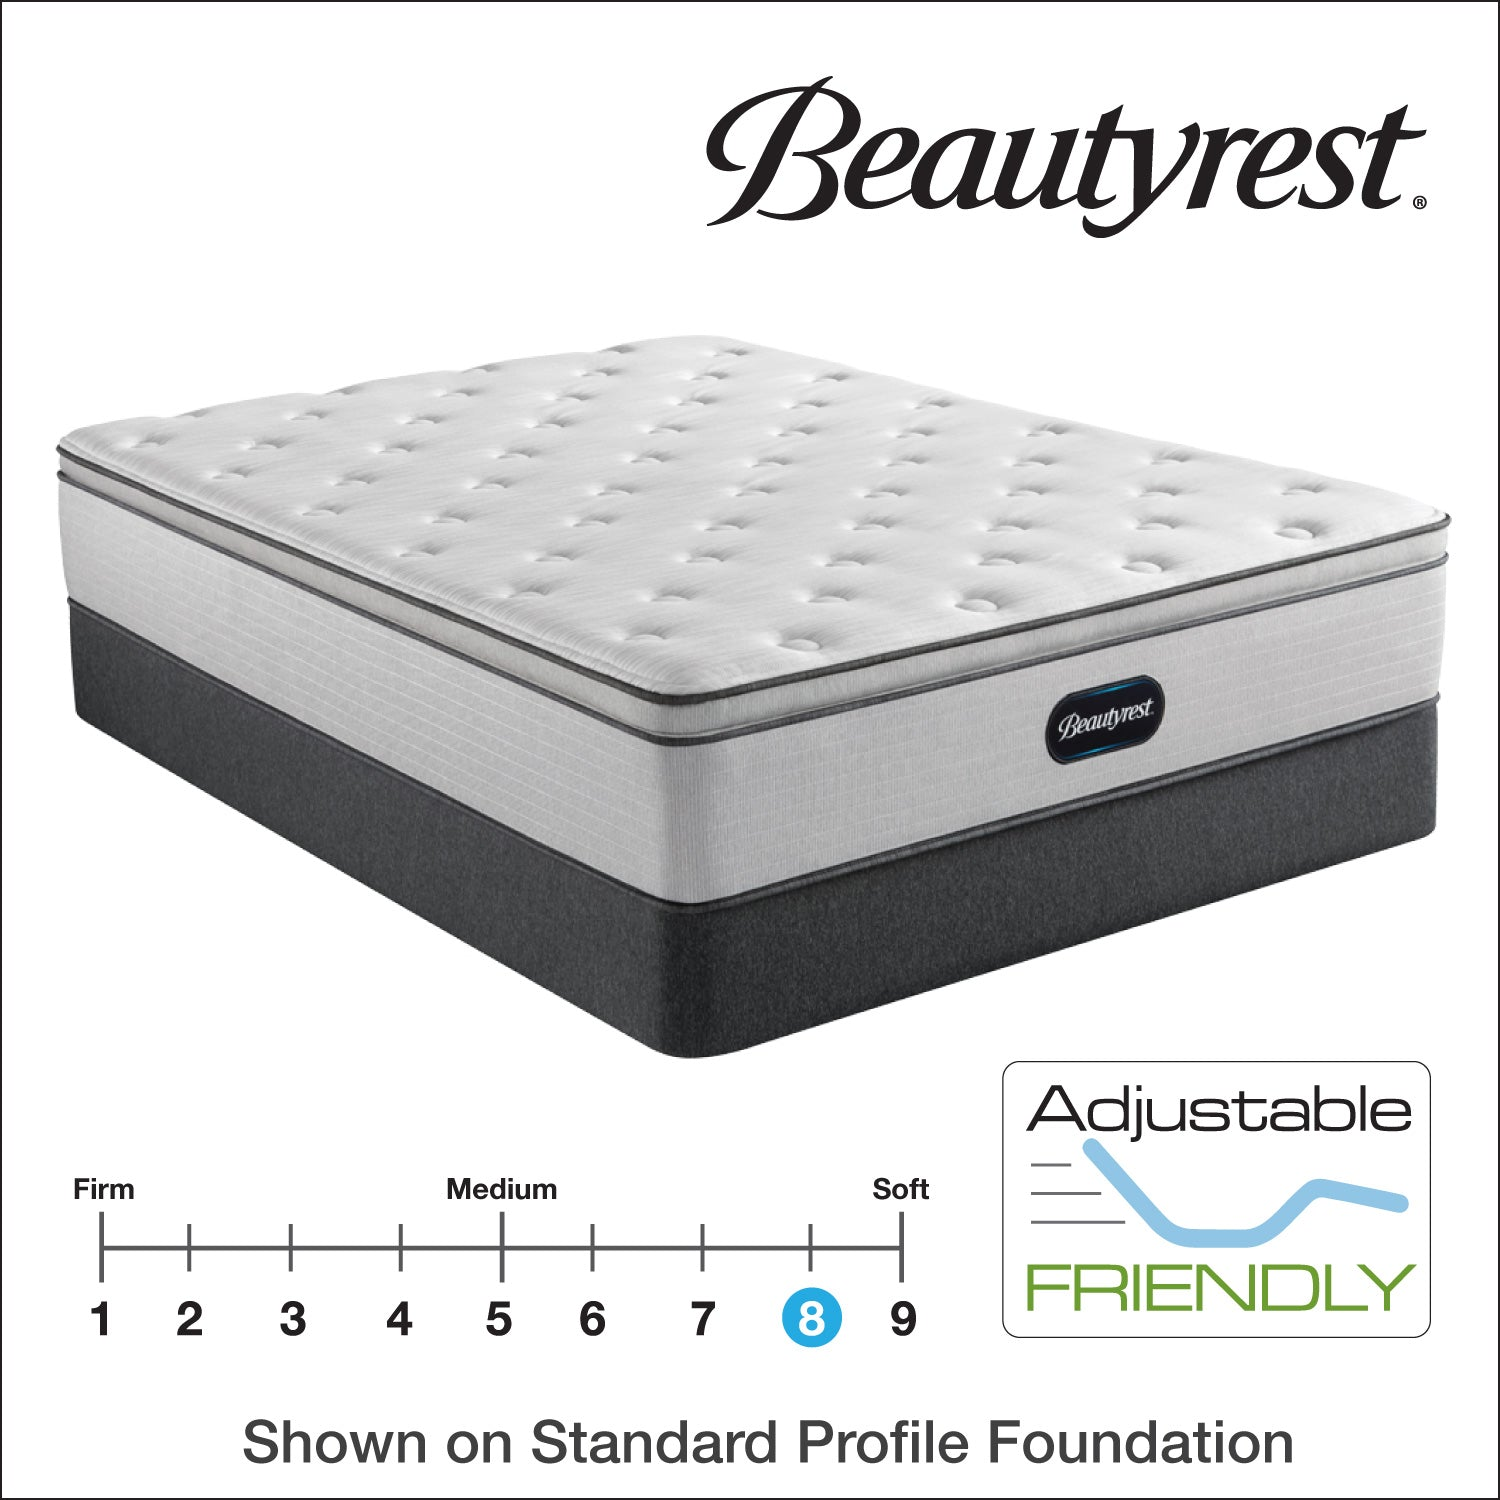 Beautyrest 13 5 Br800 Plush Pillow Top Mattress Bedding Mart